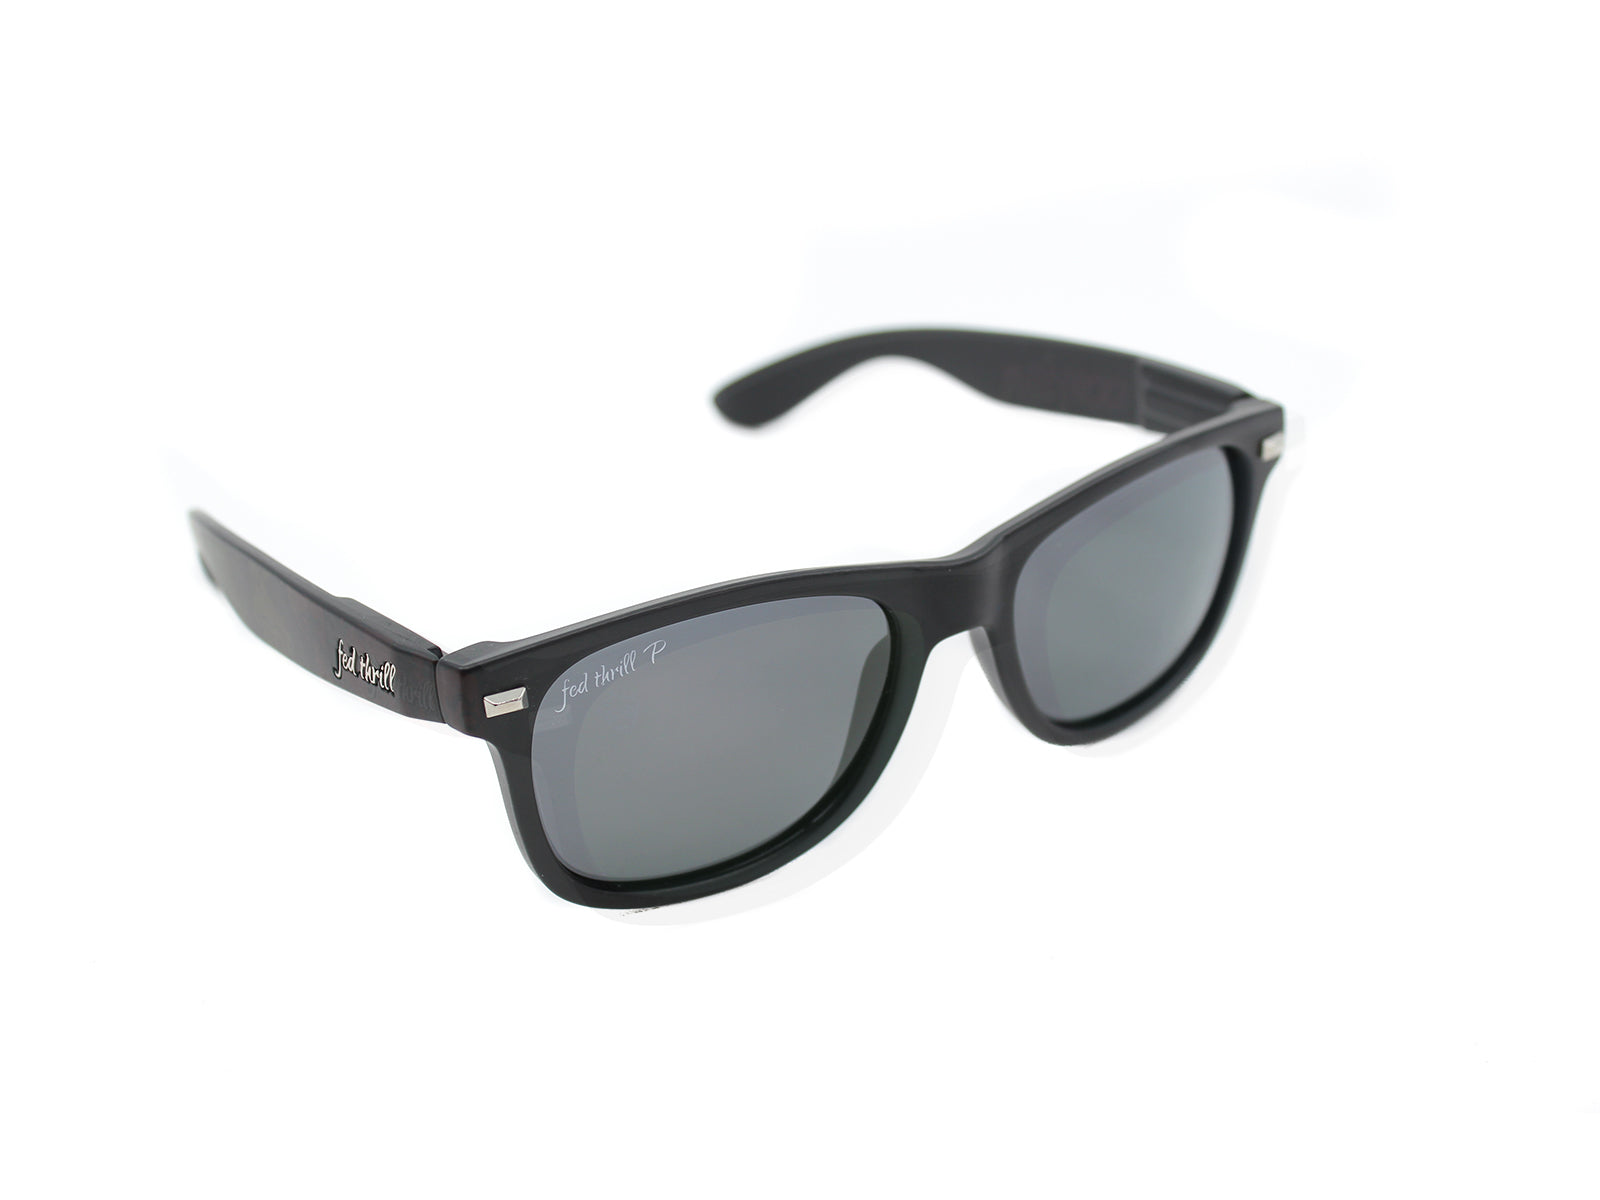 Fultons - Black Ops: Matte Black / Smoke Polarized